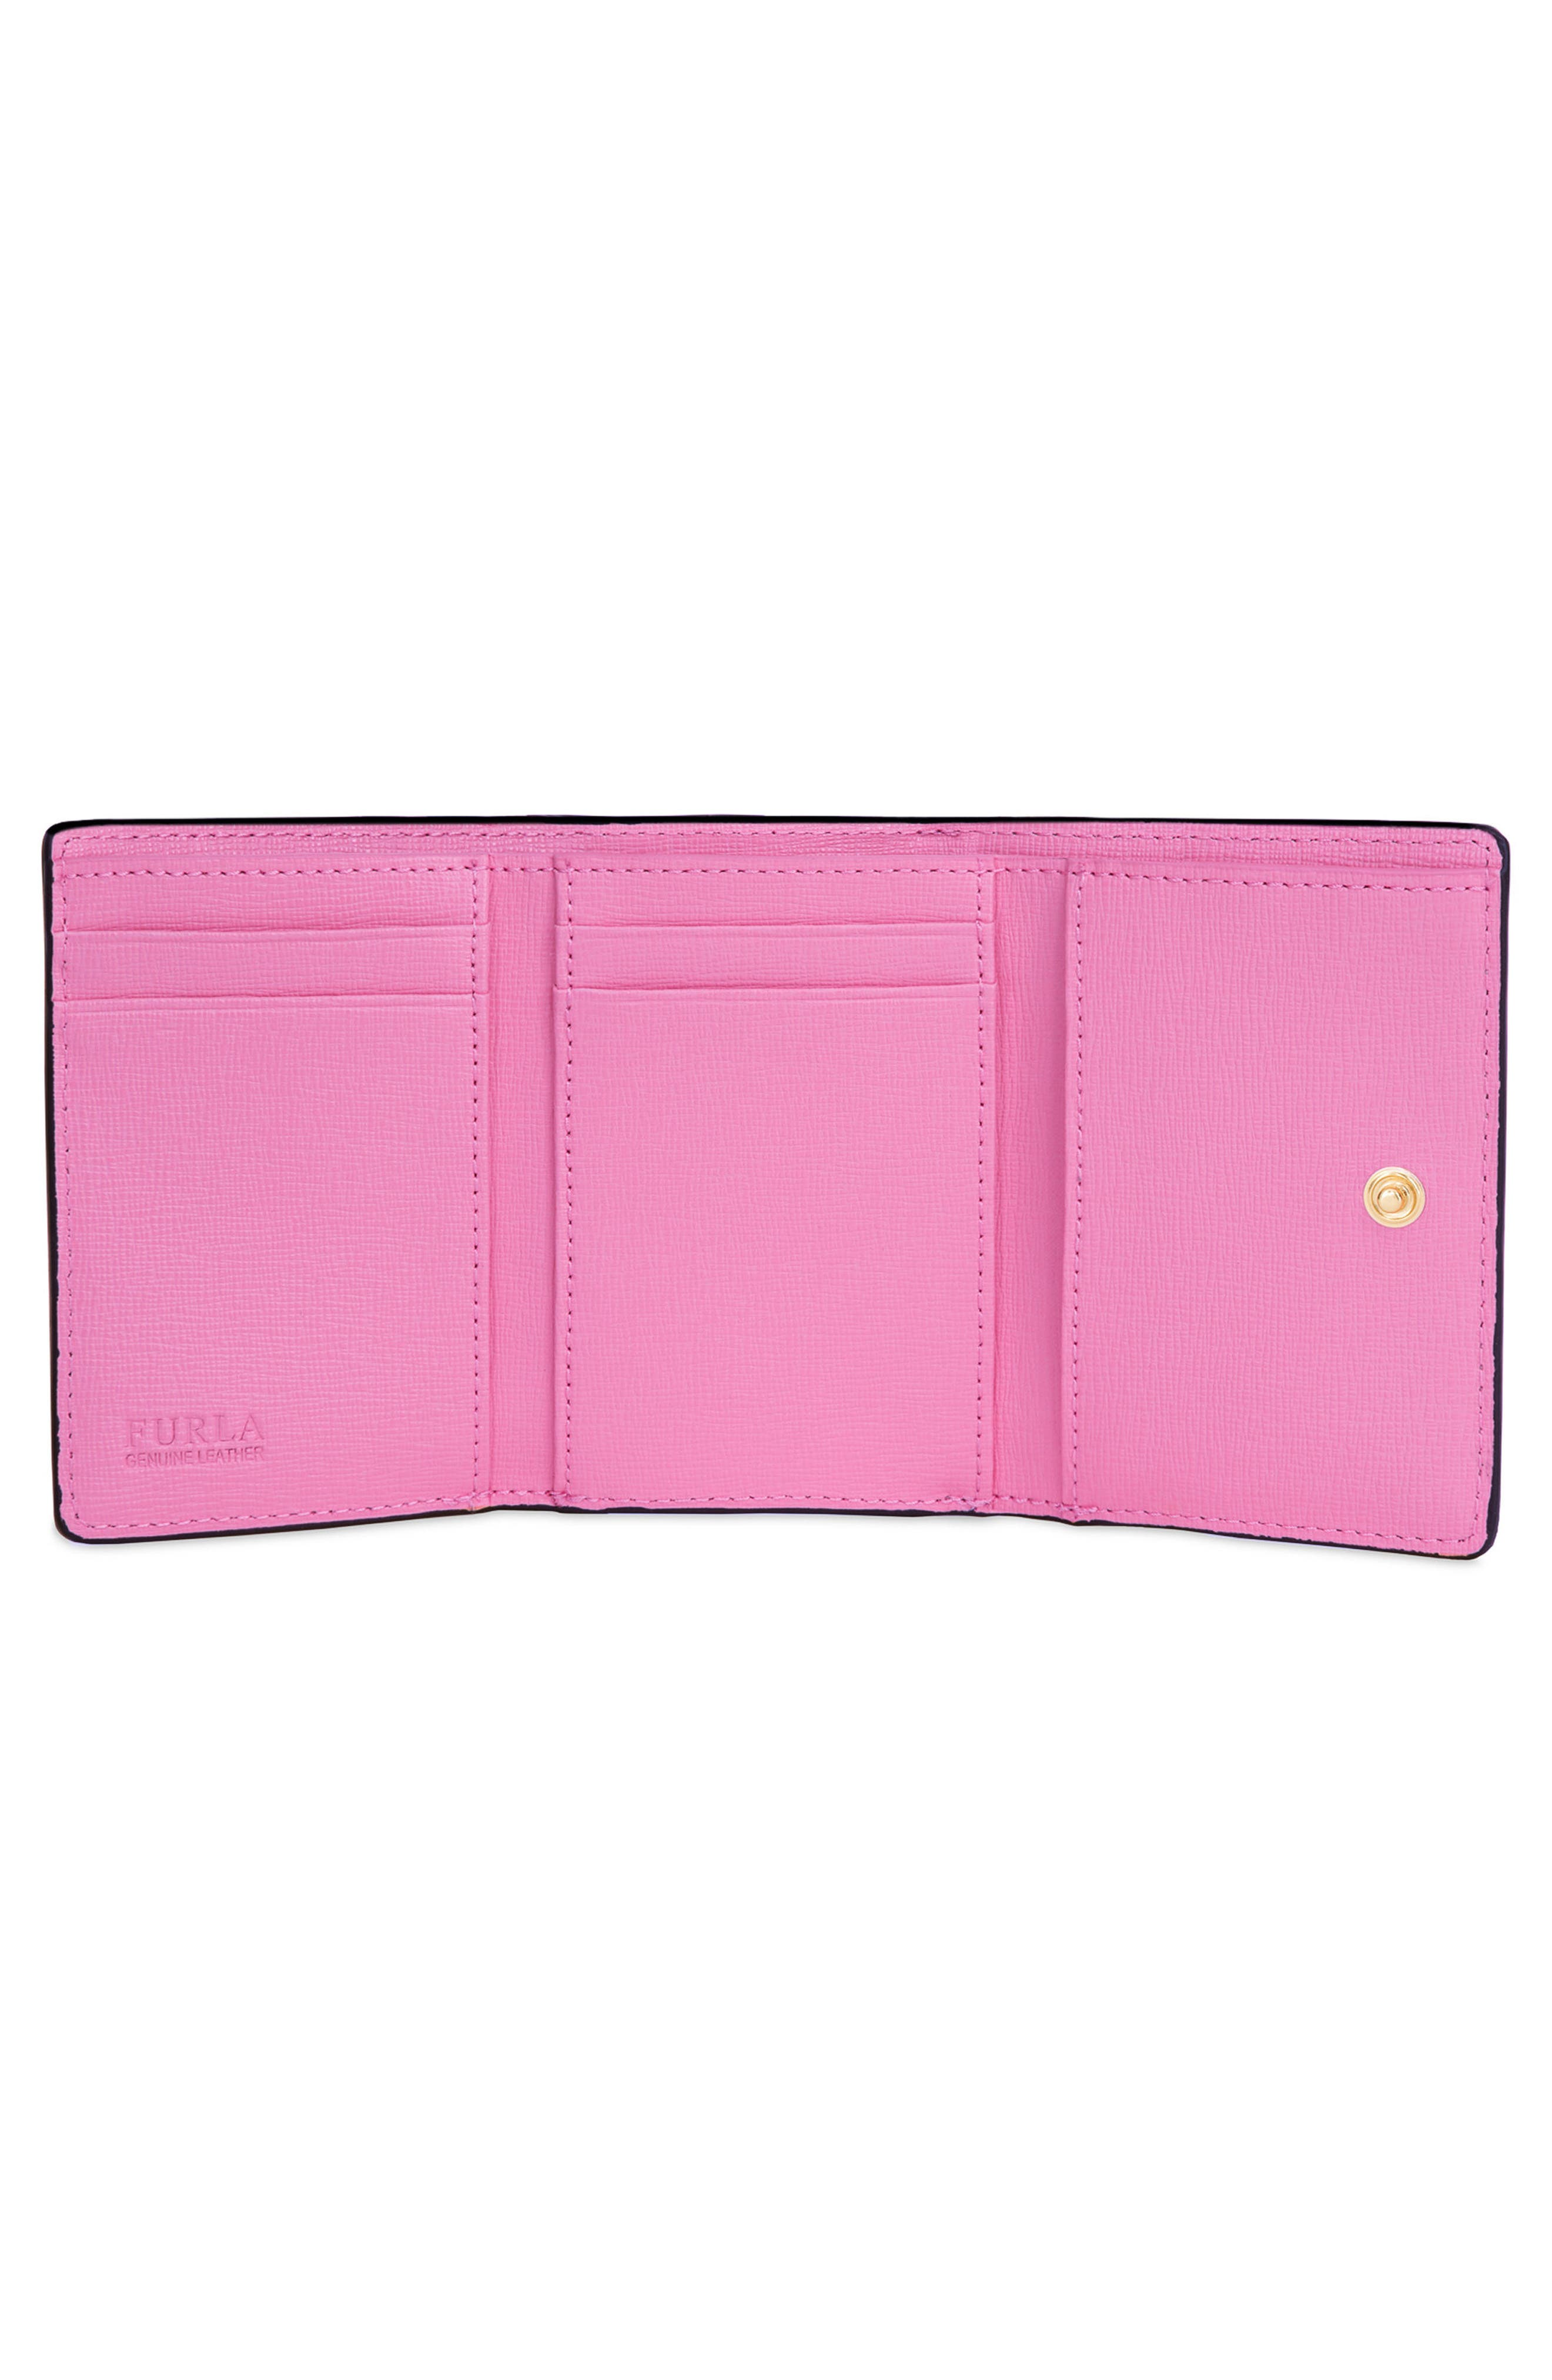 Babylon Saffiano Leather Trifold Wallet,                             Alternate thumbnail 2, color,                             650